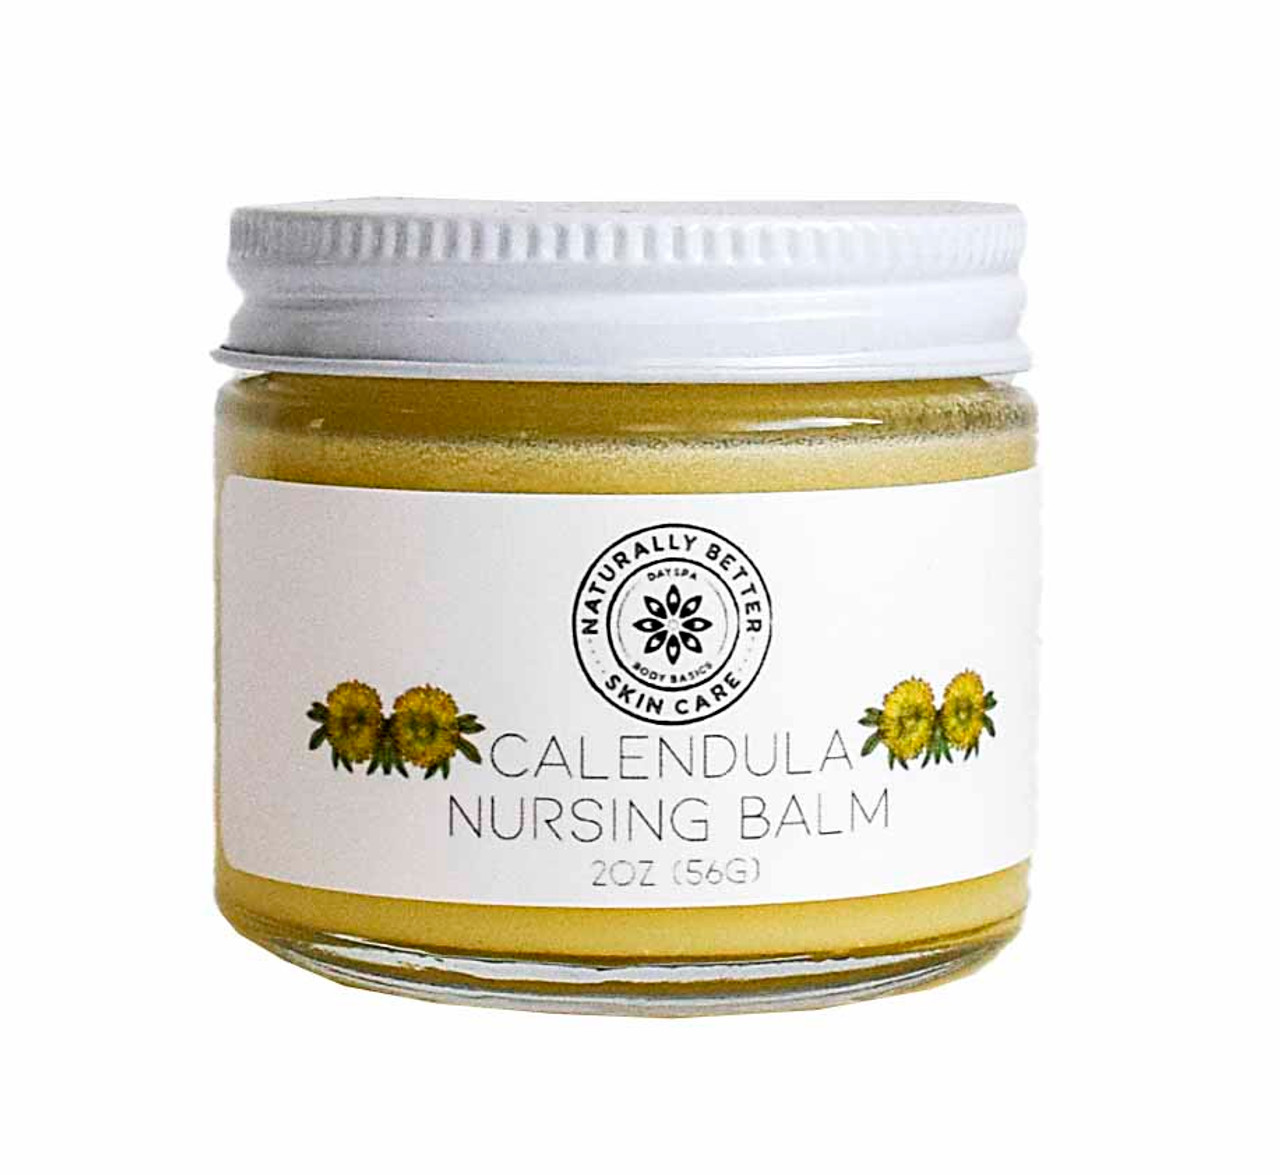 Calendula Nursing Balm - Herbal Salve for Soothing Sore, Cracked Nipples